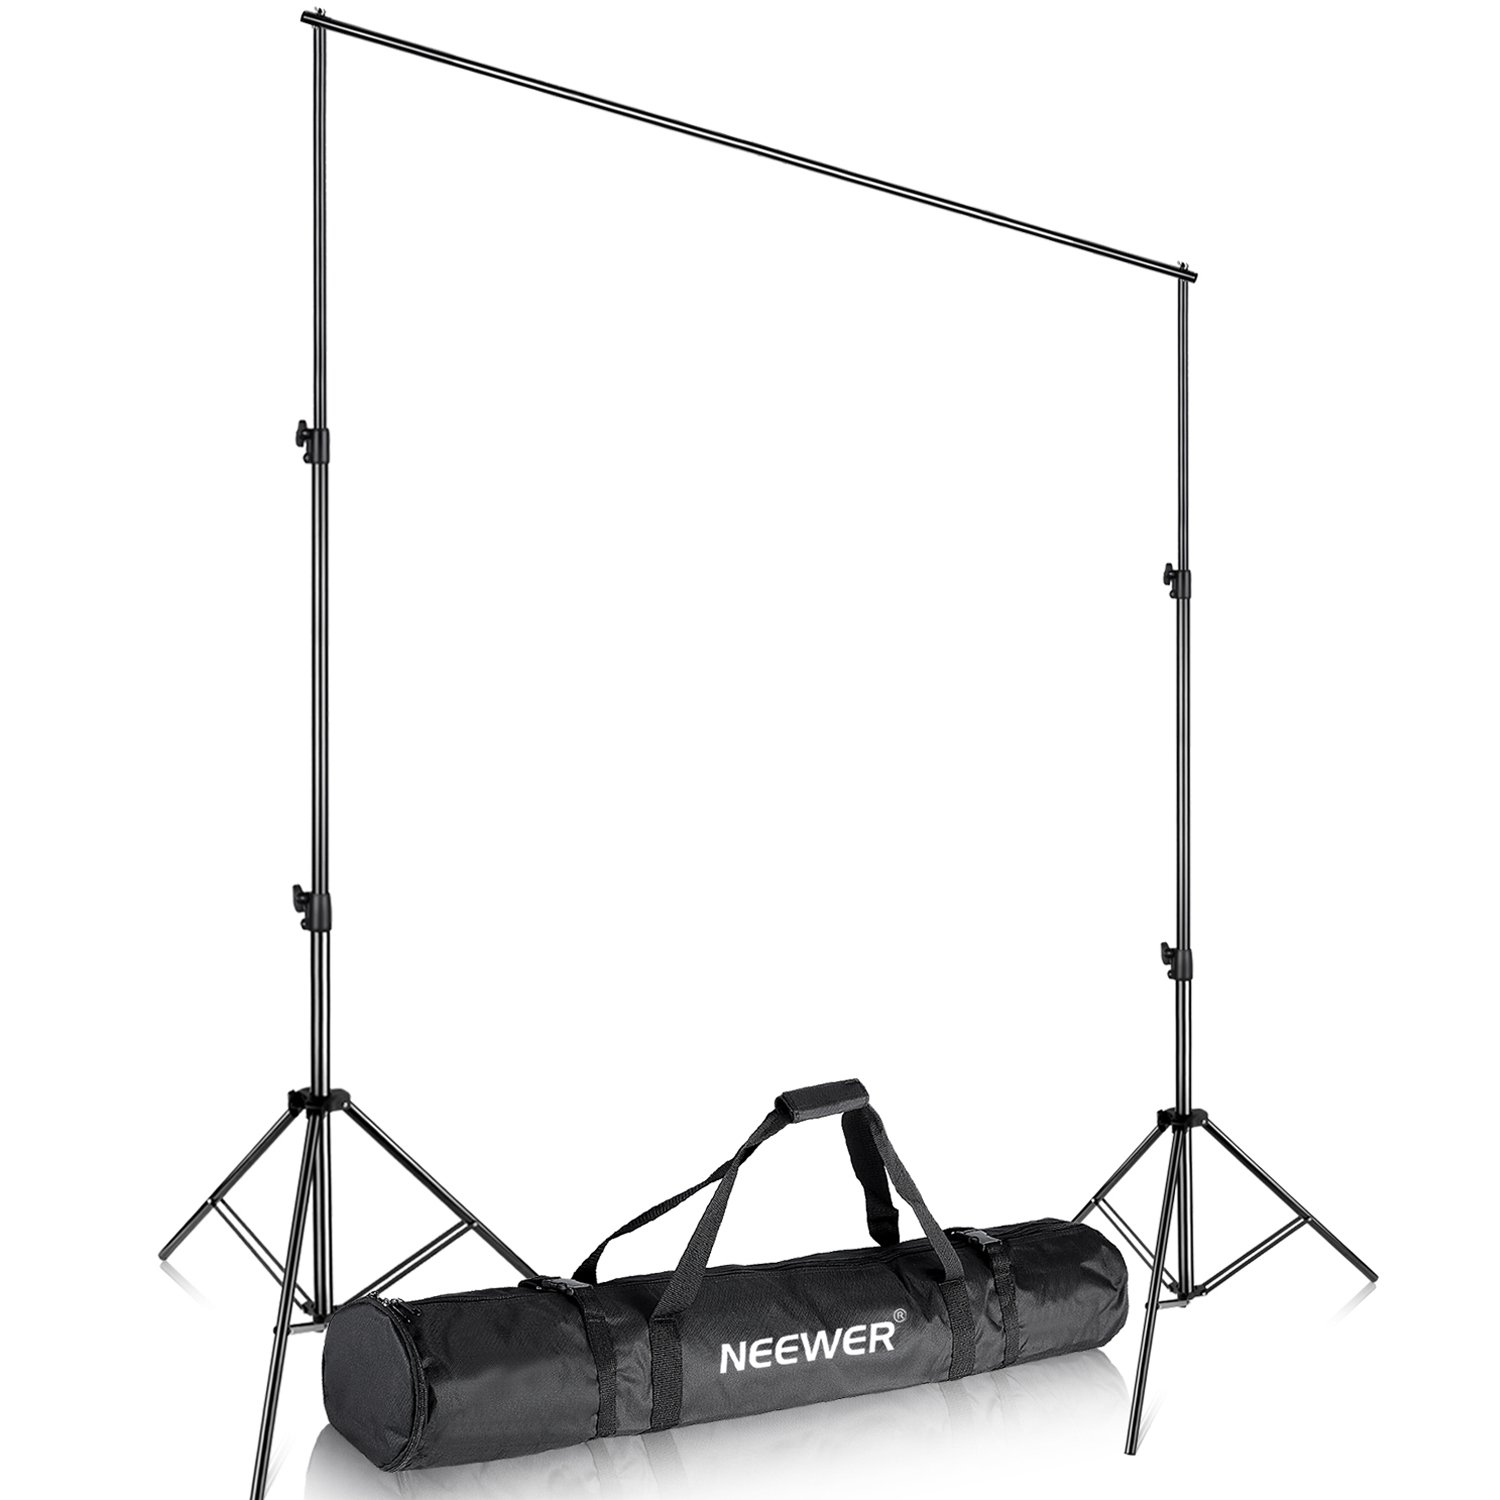 Neewer Pro 10x12 feet/3x3.6 Meters Heavy Duty Adjustable Backdrop Support System Photography Studio Video Stand with Carrying Bag for Backdrop Background by Neewer